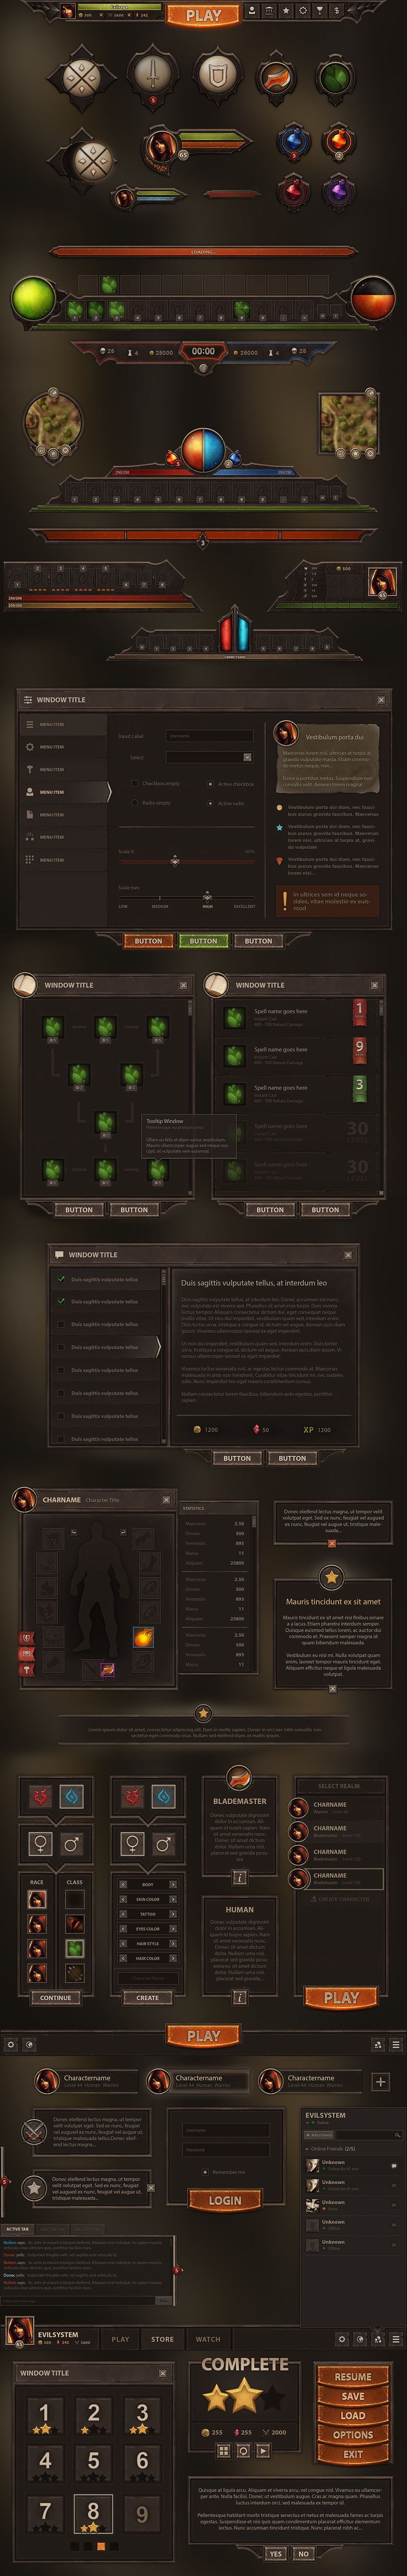 Burnblade UI by Evil-S.deviantart.com on @DeviantArt